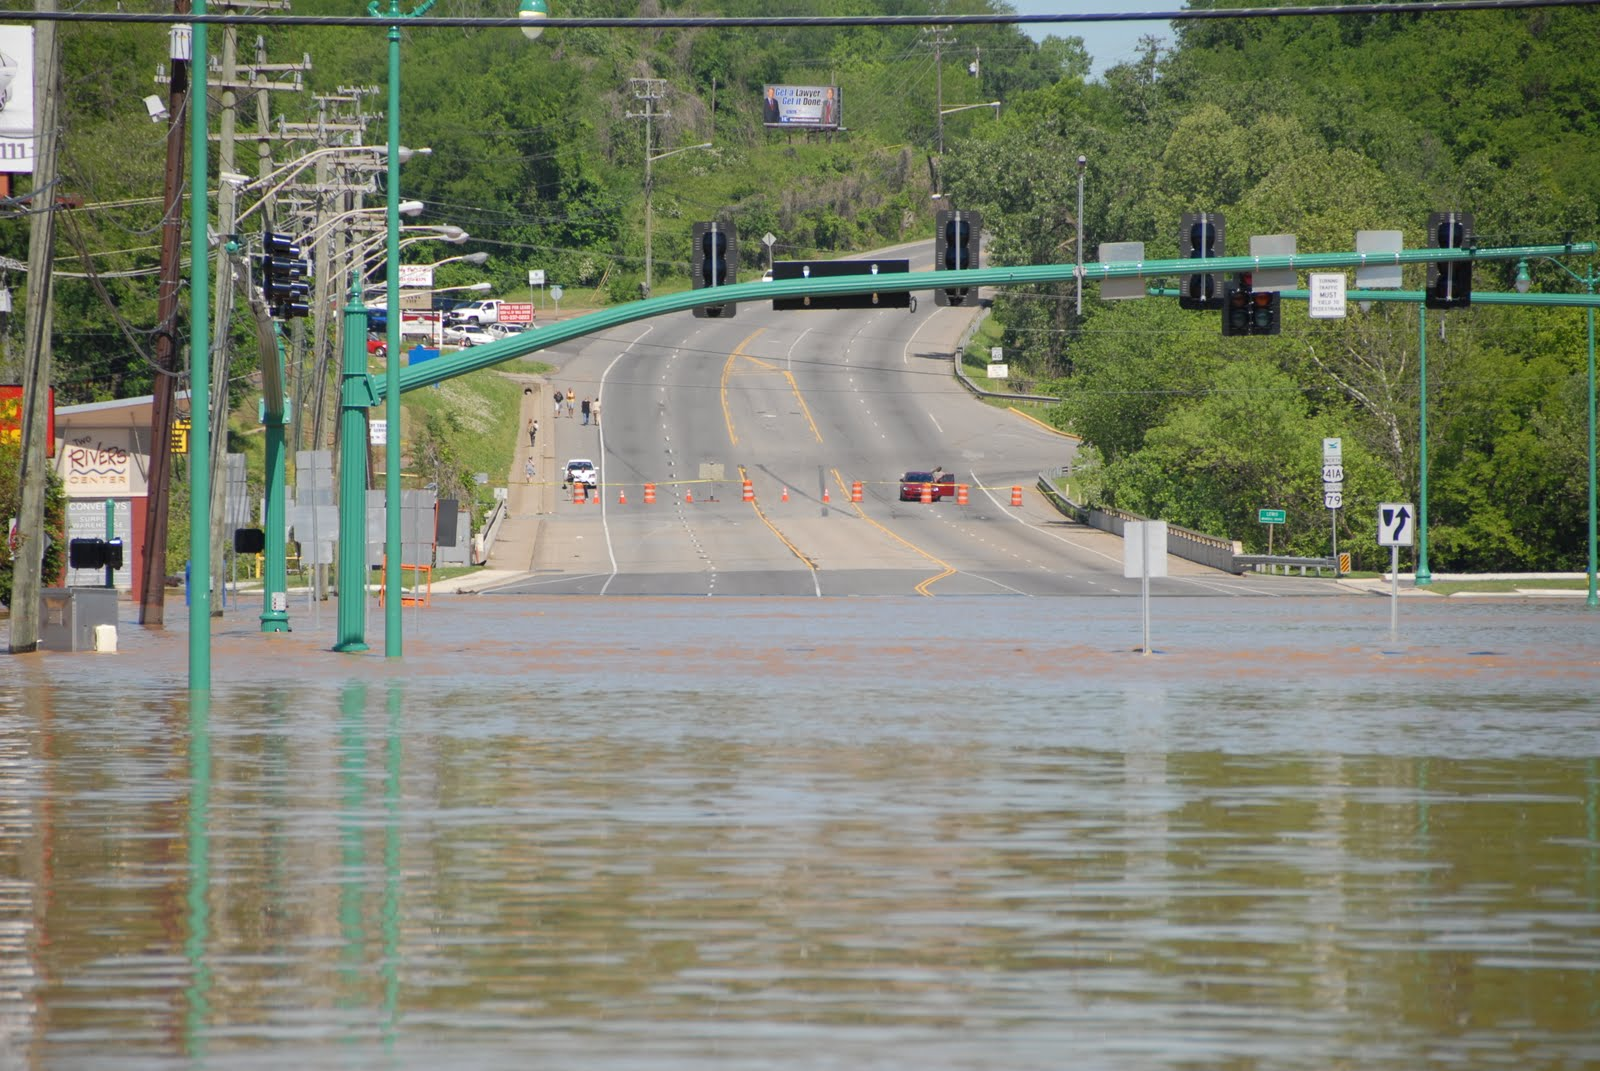 Bobs three month cretan adventure the great flood of 2010 above left photo intersection of college street and kraft street looking toward the bridge that connects clarksville with the community of st bethlehem sciox Image collections